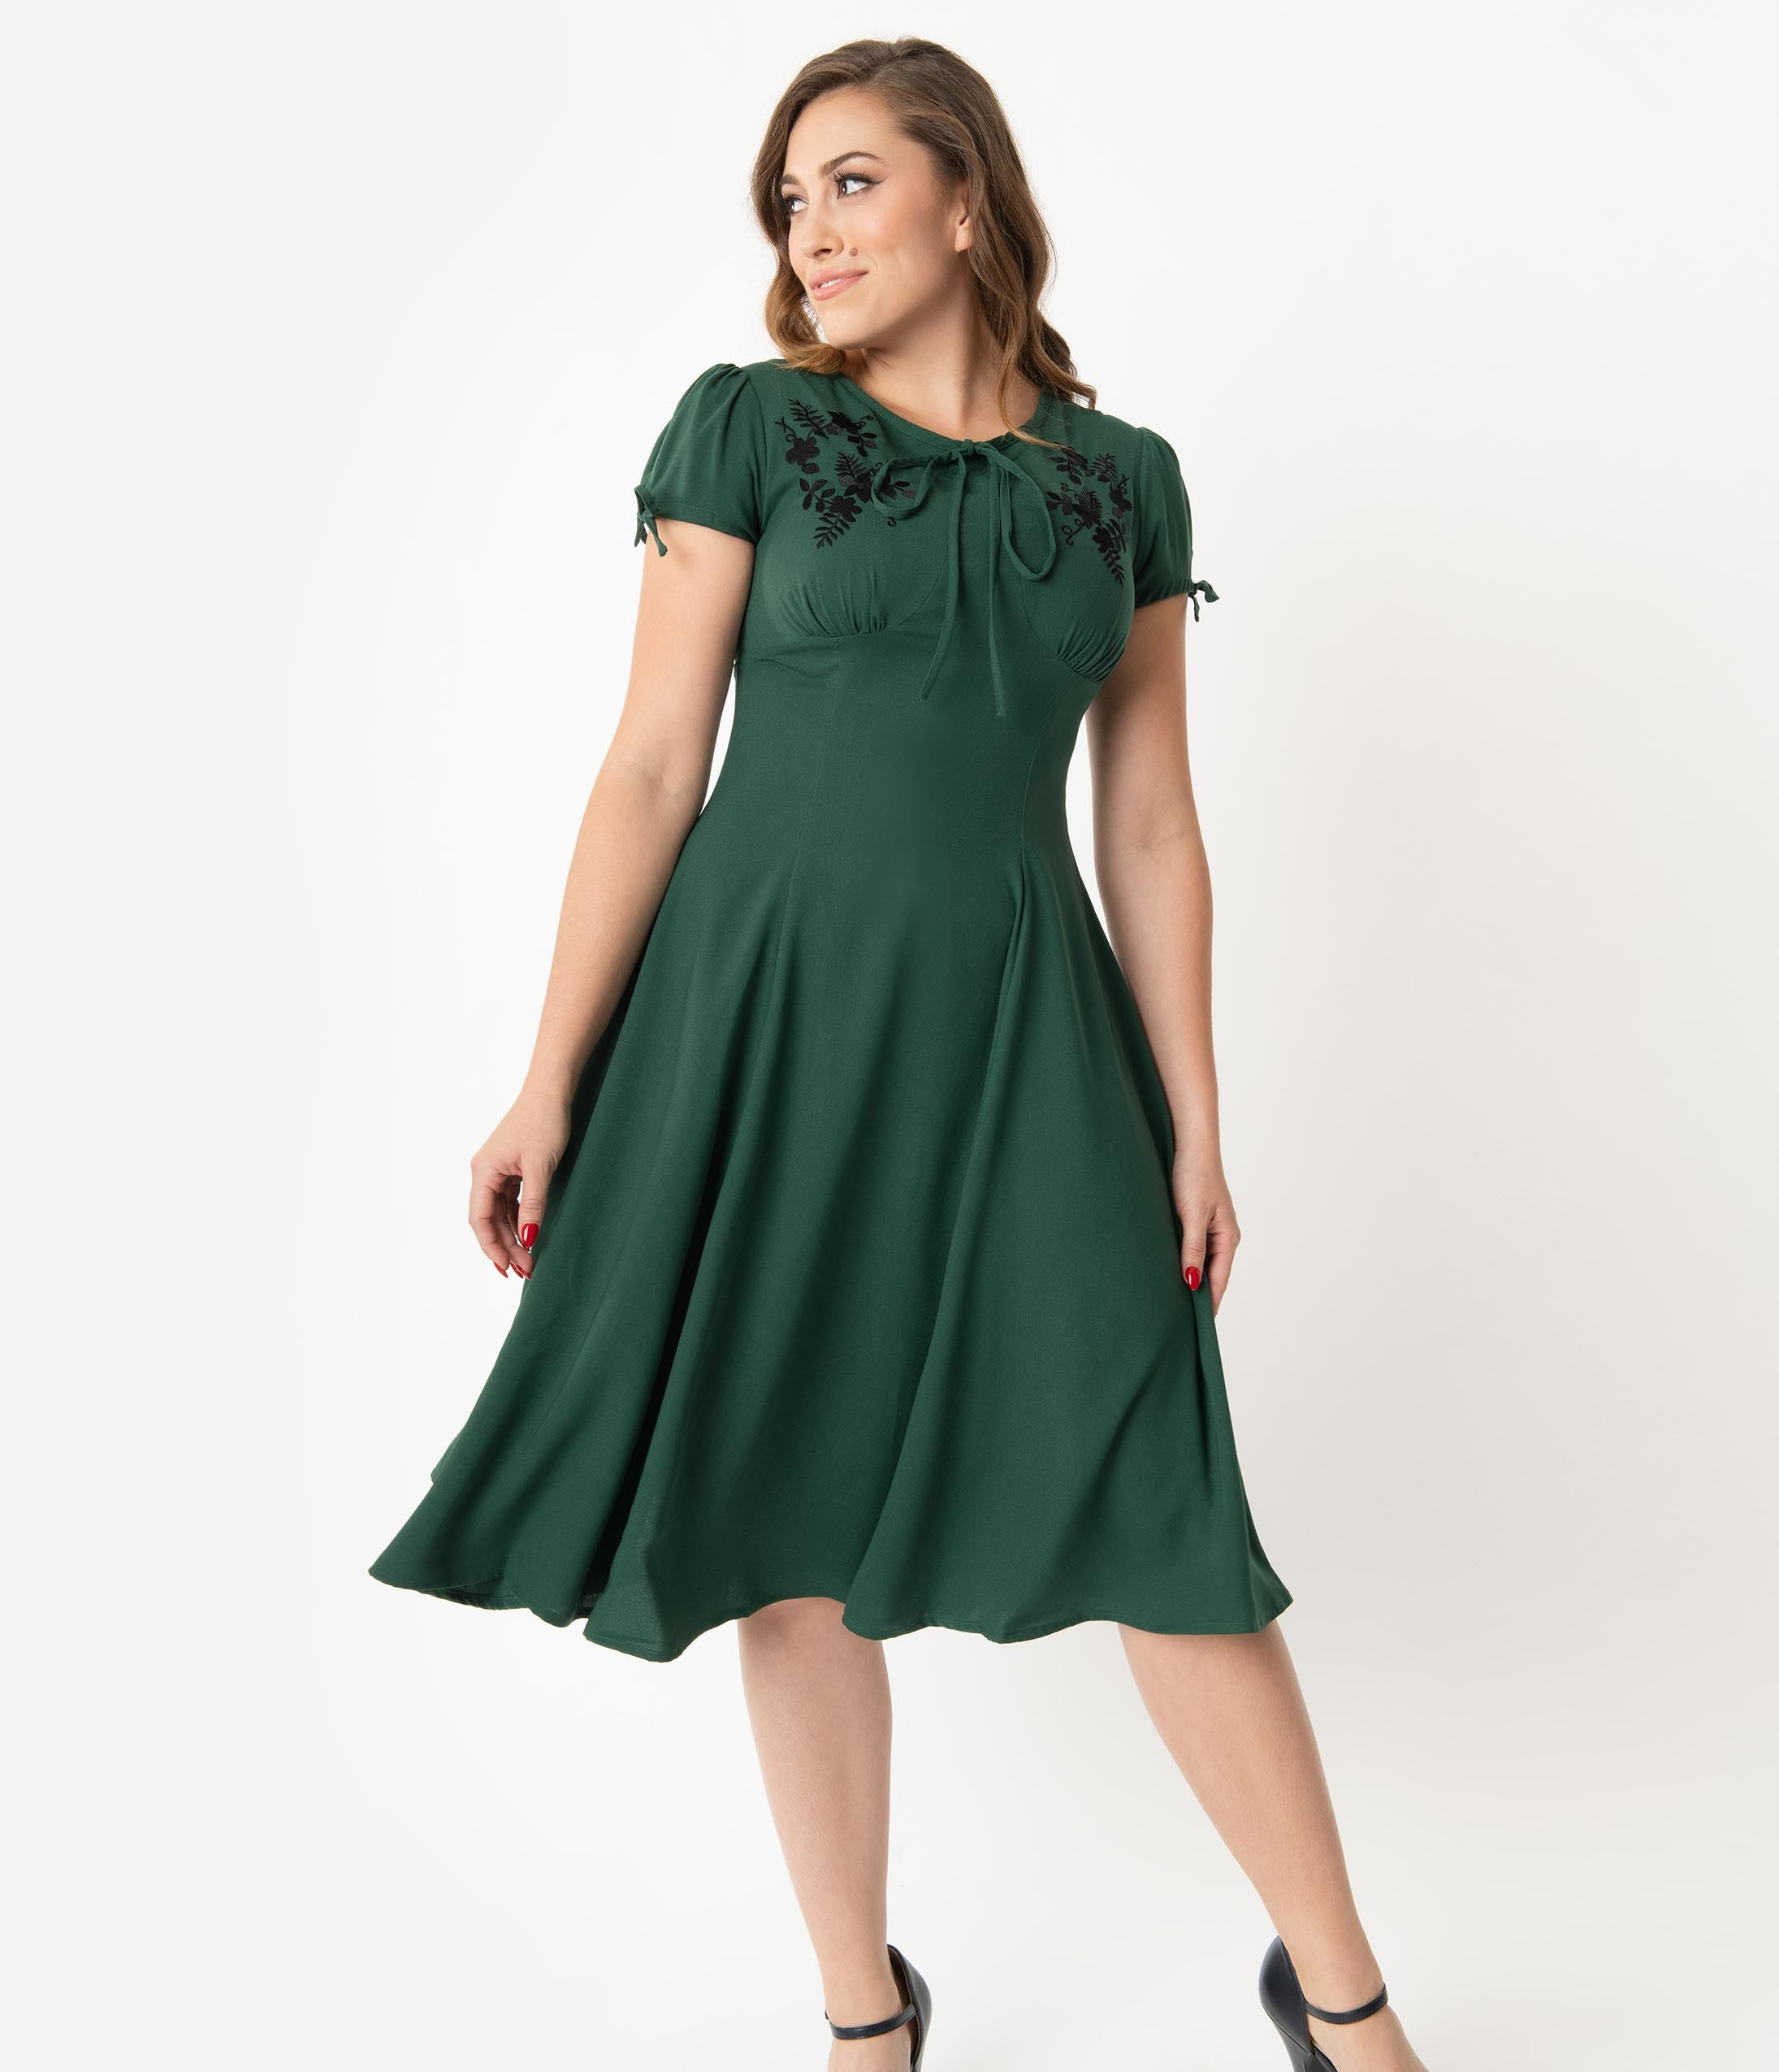 500 Vintage Style Dresses for Sale | Vintage Inspired Dresses 1940S Style Emerald Green  Black Embroidered Floral Ava Swing Dress $78.00 AT vintagedancer.com